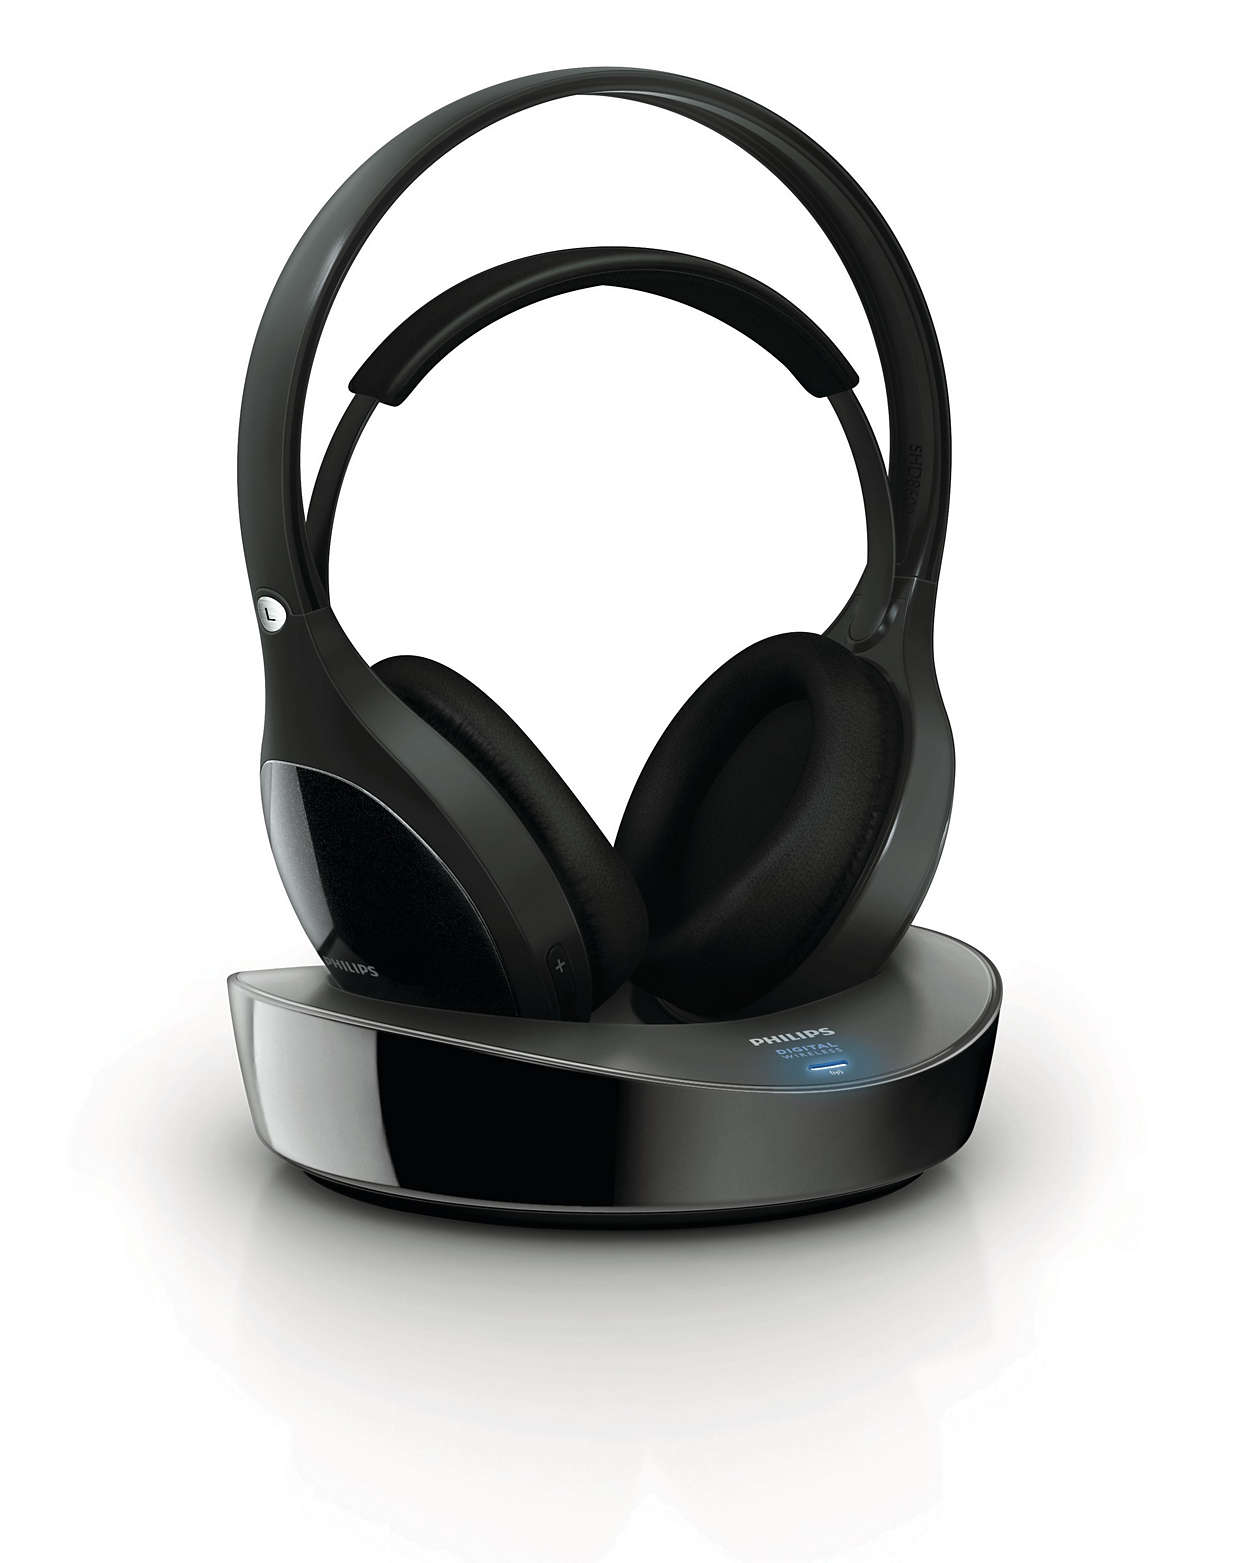 55062469f52 Digital wireless headphones SHD8600/79 | Philips